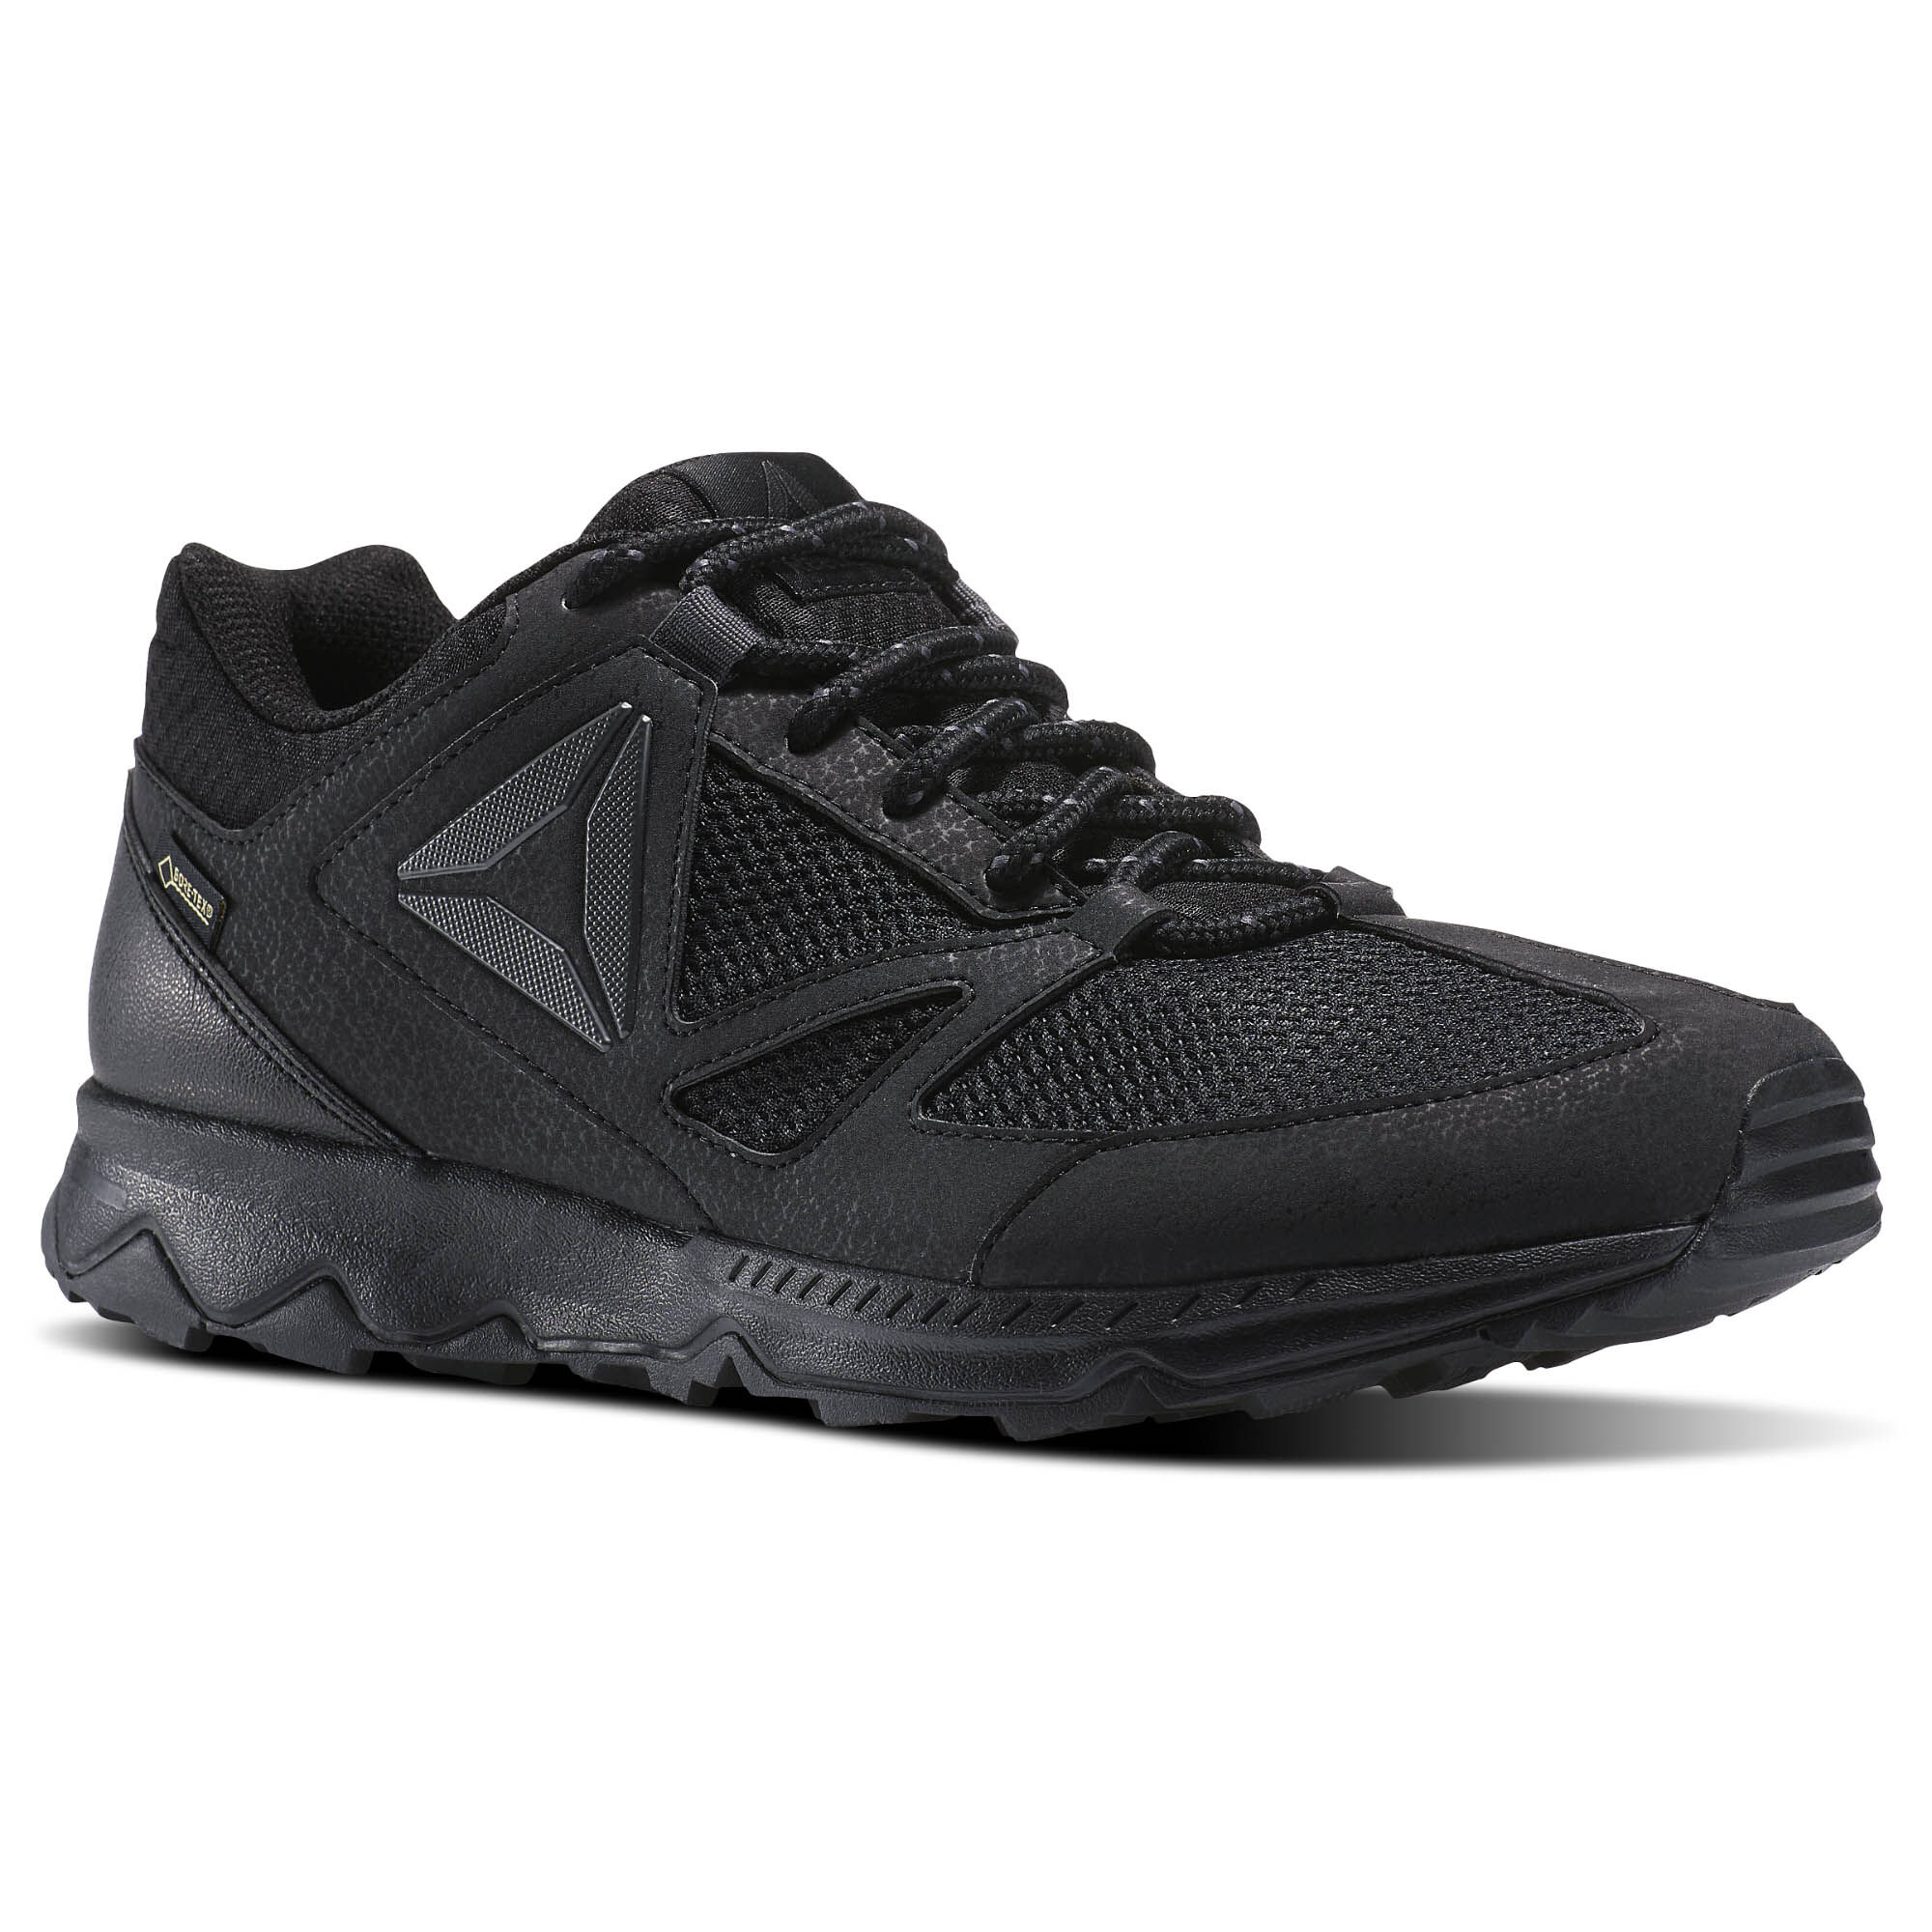 Reebok SKYE PEAK GTX 5.0 - Walking trainers - black/ash grey/coal I1wMn